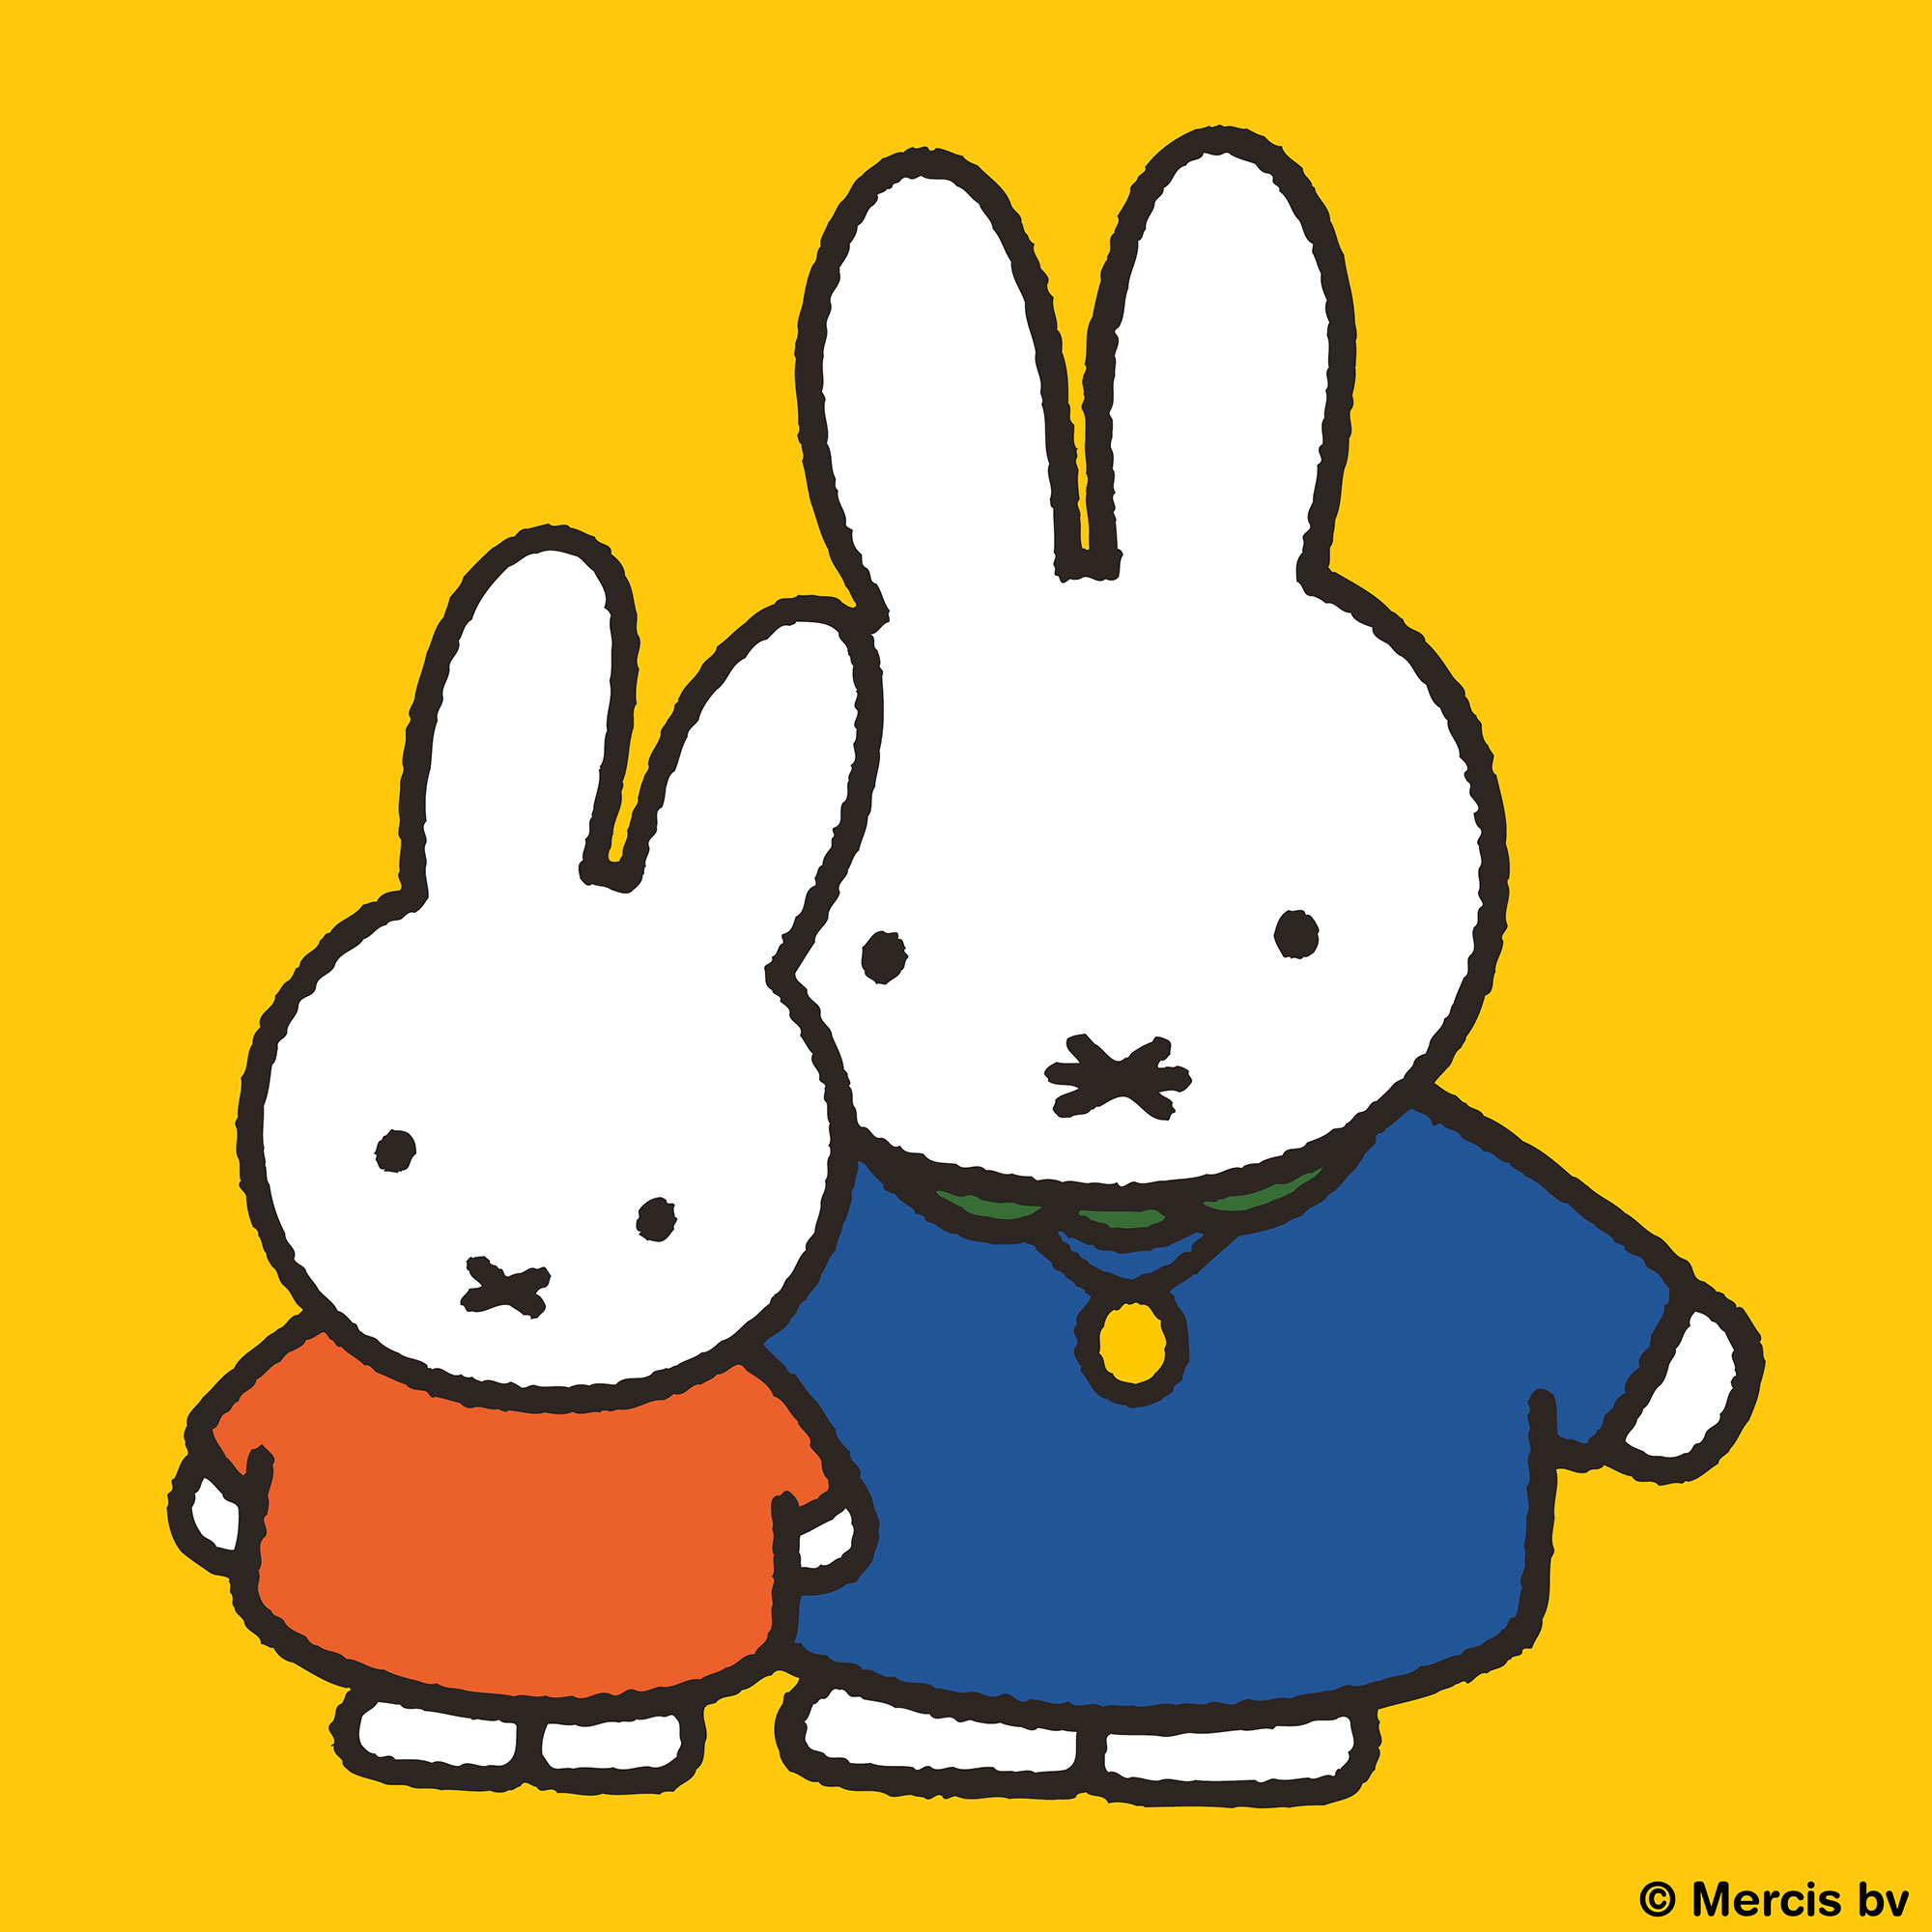 Miffy wearing a red dress dancing with a friend with a yellow background